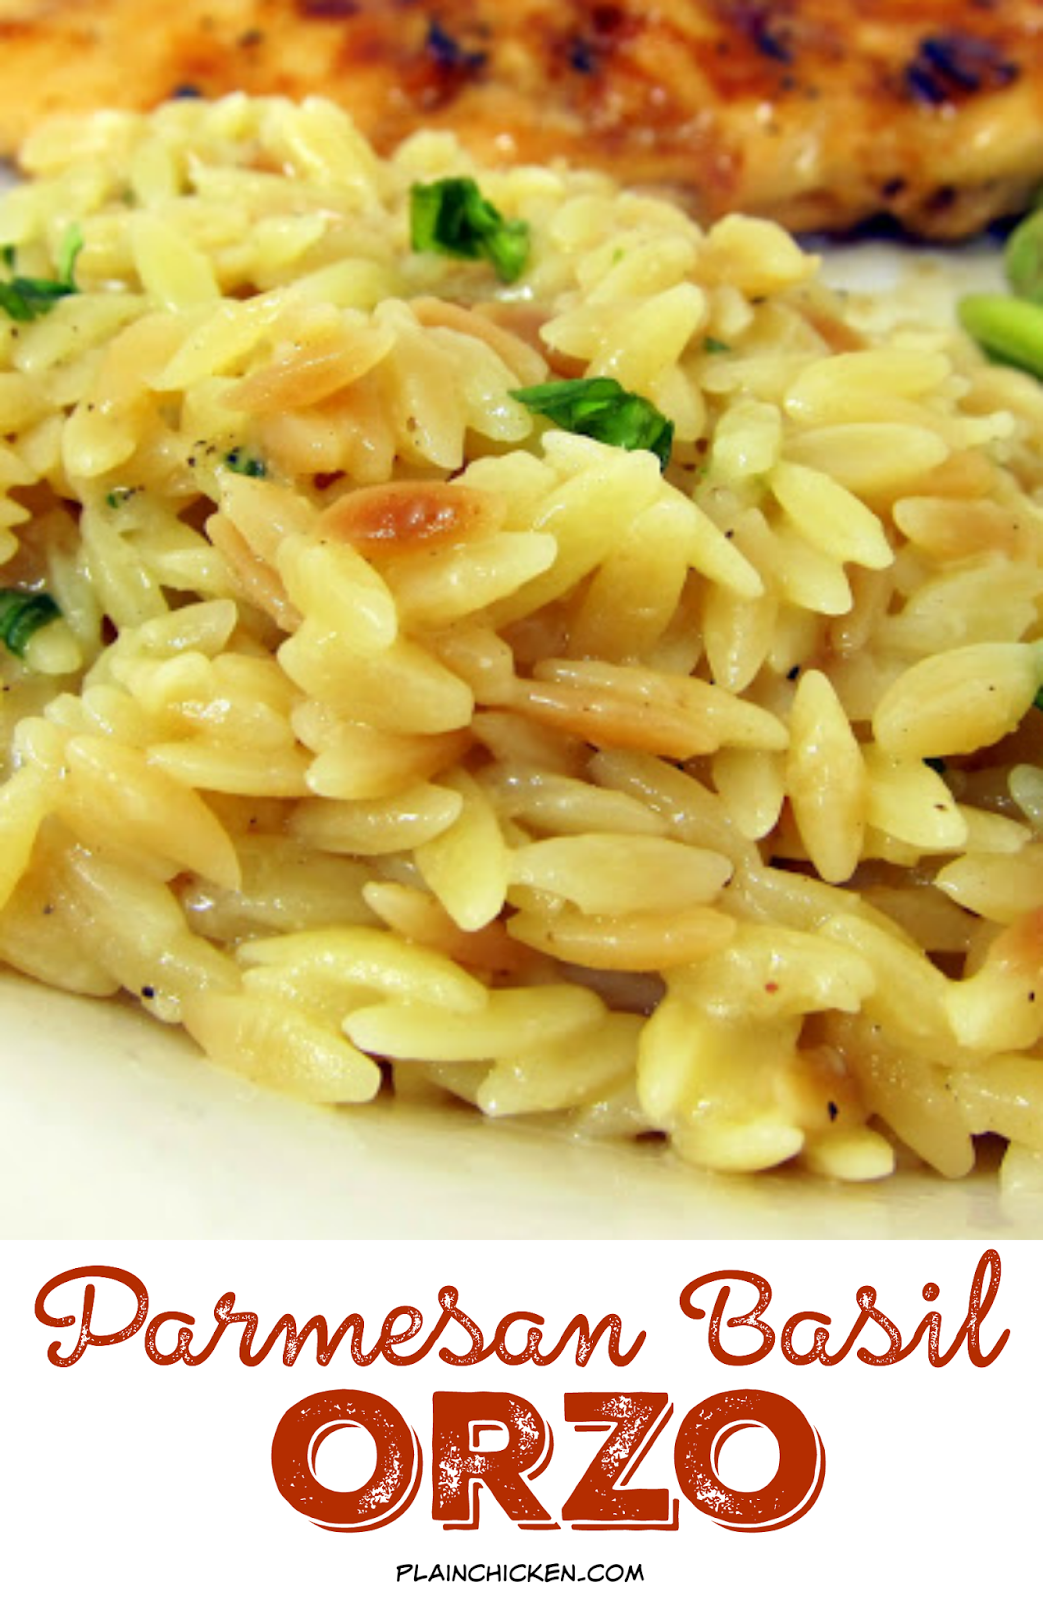 Parmesan Basil Orzo - toss the box and make this delicious side dish! orzo, chicken broth and parmesan cheese - ready in 20 minutes.